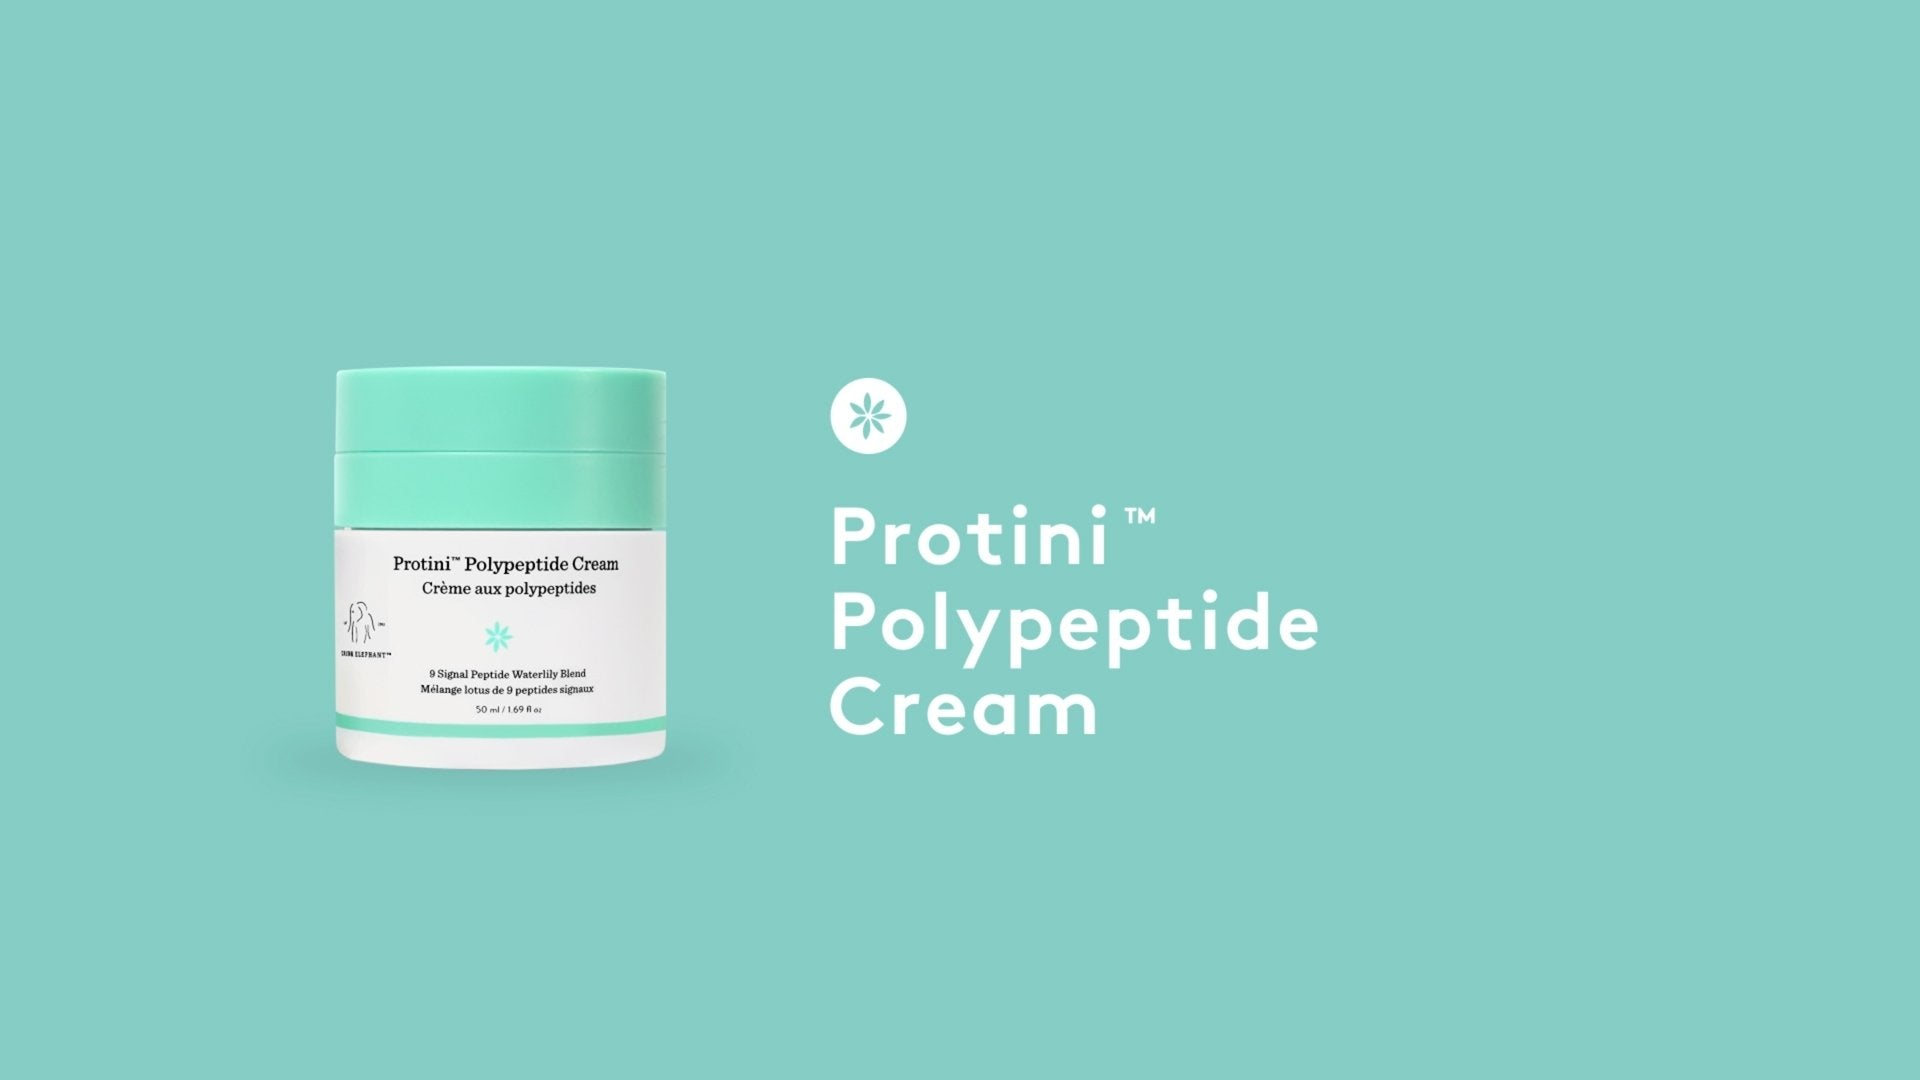 video detailing the benefits of Protini Polypeptide Cream